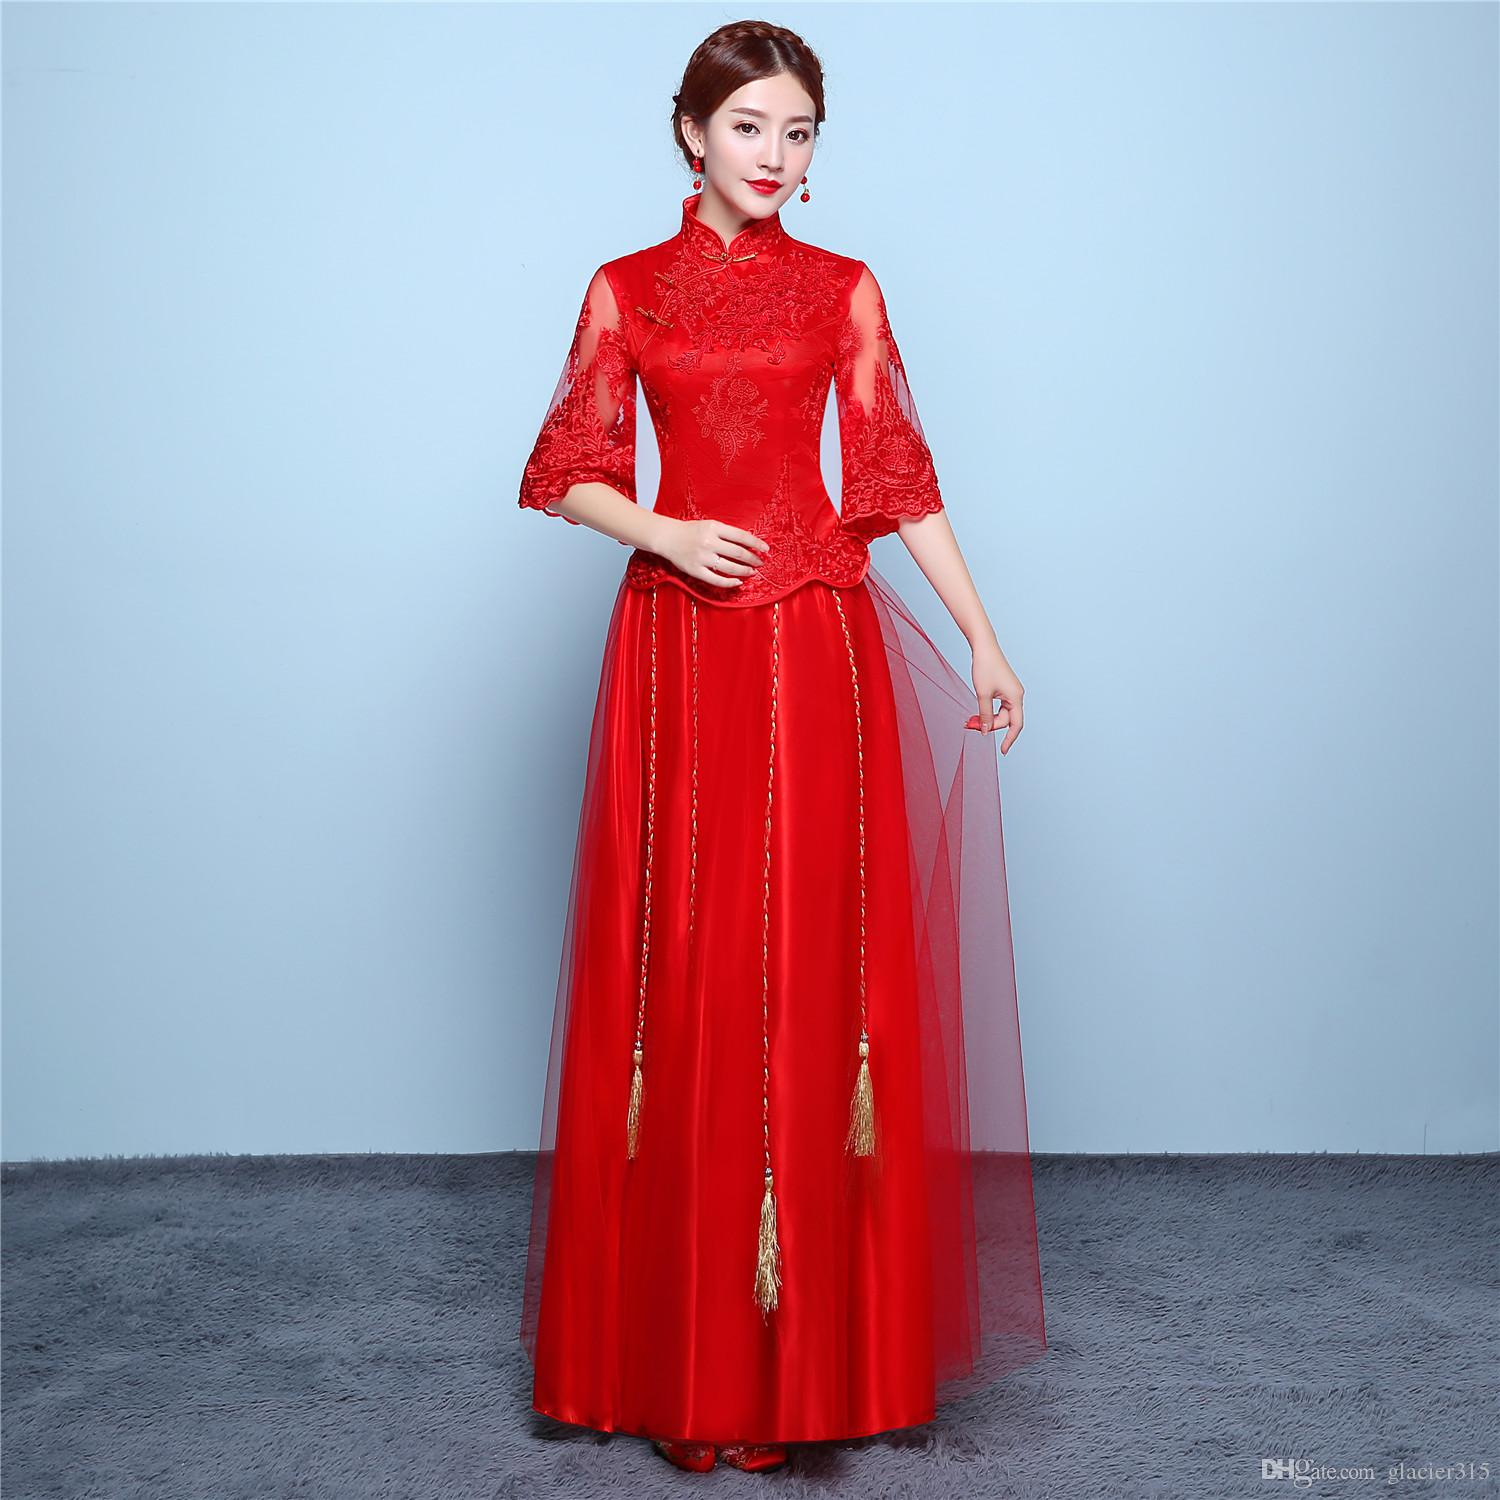 f35e5f3ac Shanghai Story Half Sleeve Lace Cheongsam Chinese Dress Red Qipao  Traditional Clothing Top + Skirt Suit Set